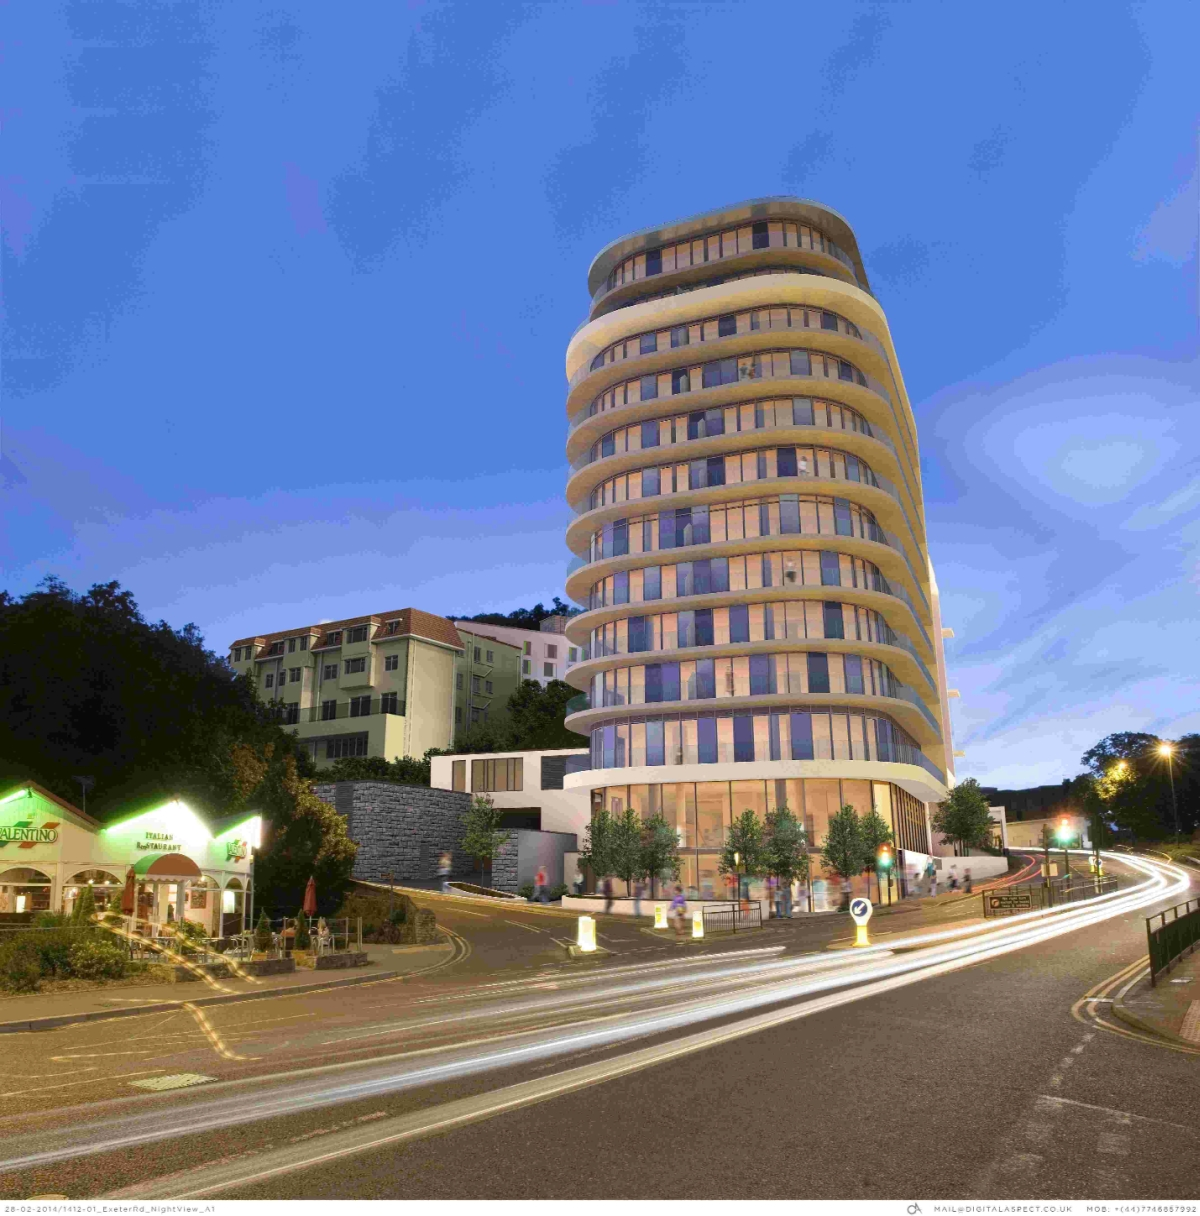 £60million scheme for two Hilton Hotels will create 130 new jobs in Bournemouth